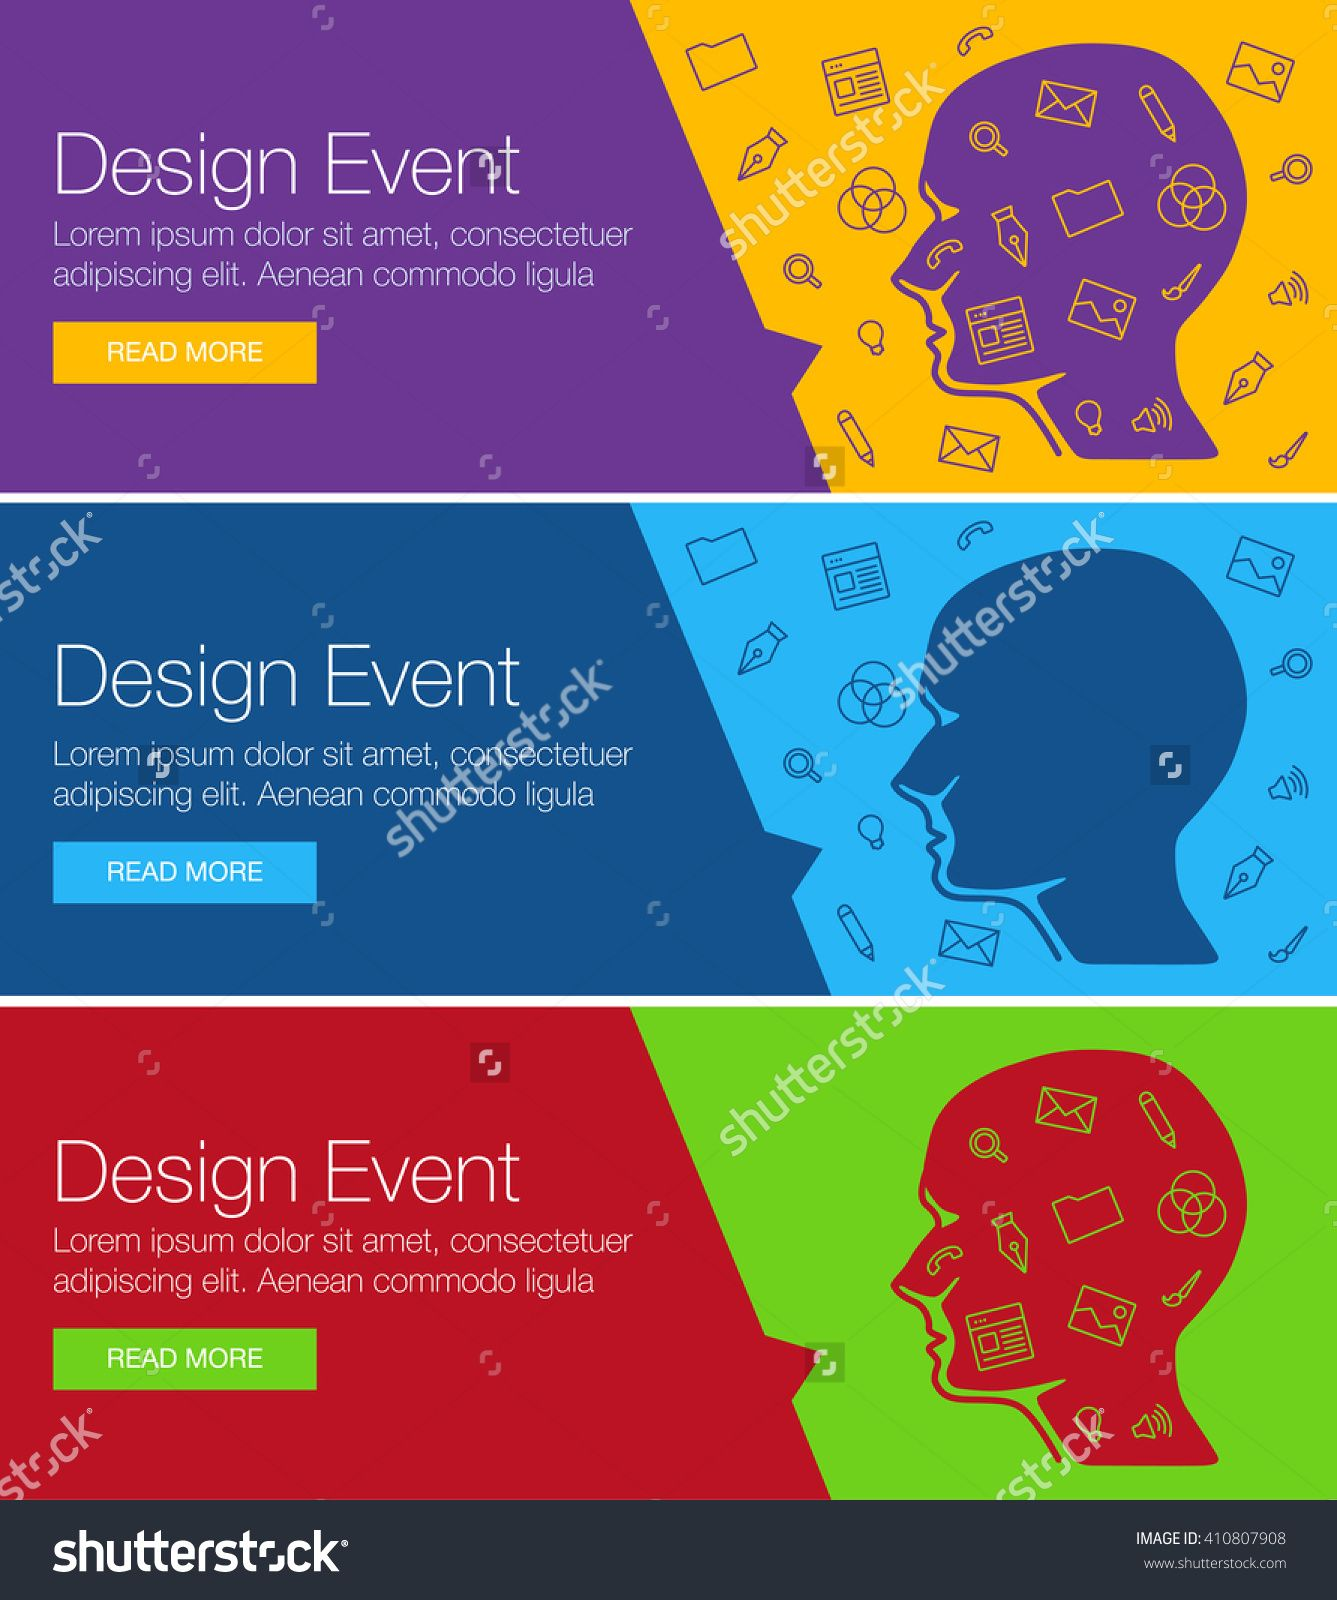 poster design for event online course training workshop banner design of ideas - Banner Design Ideas